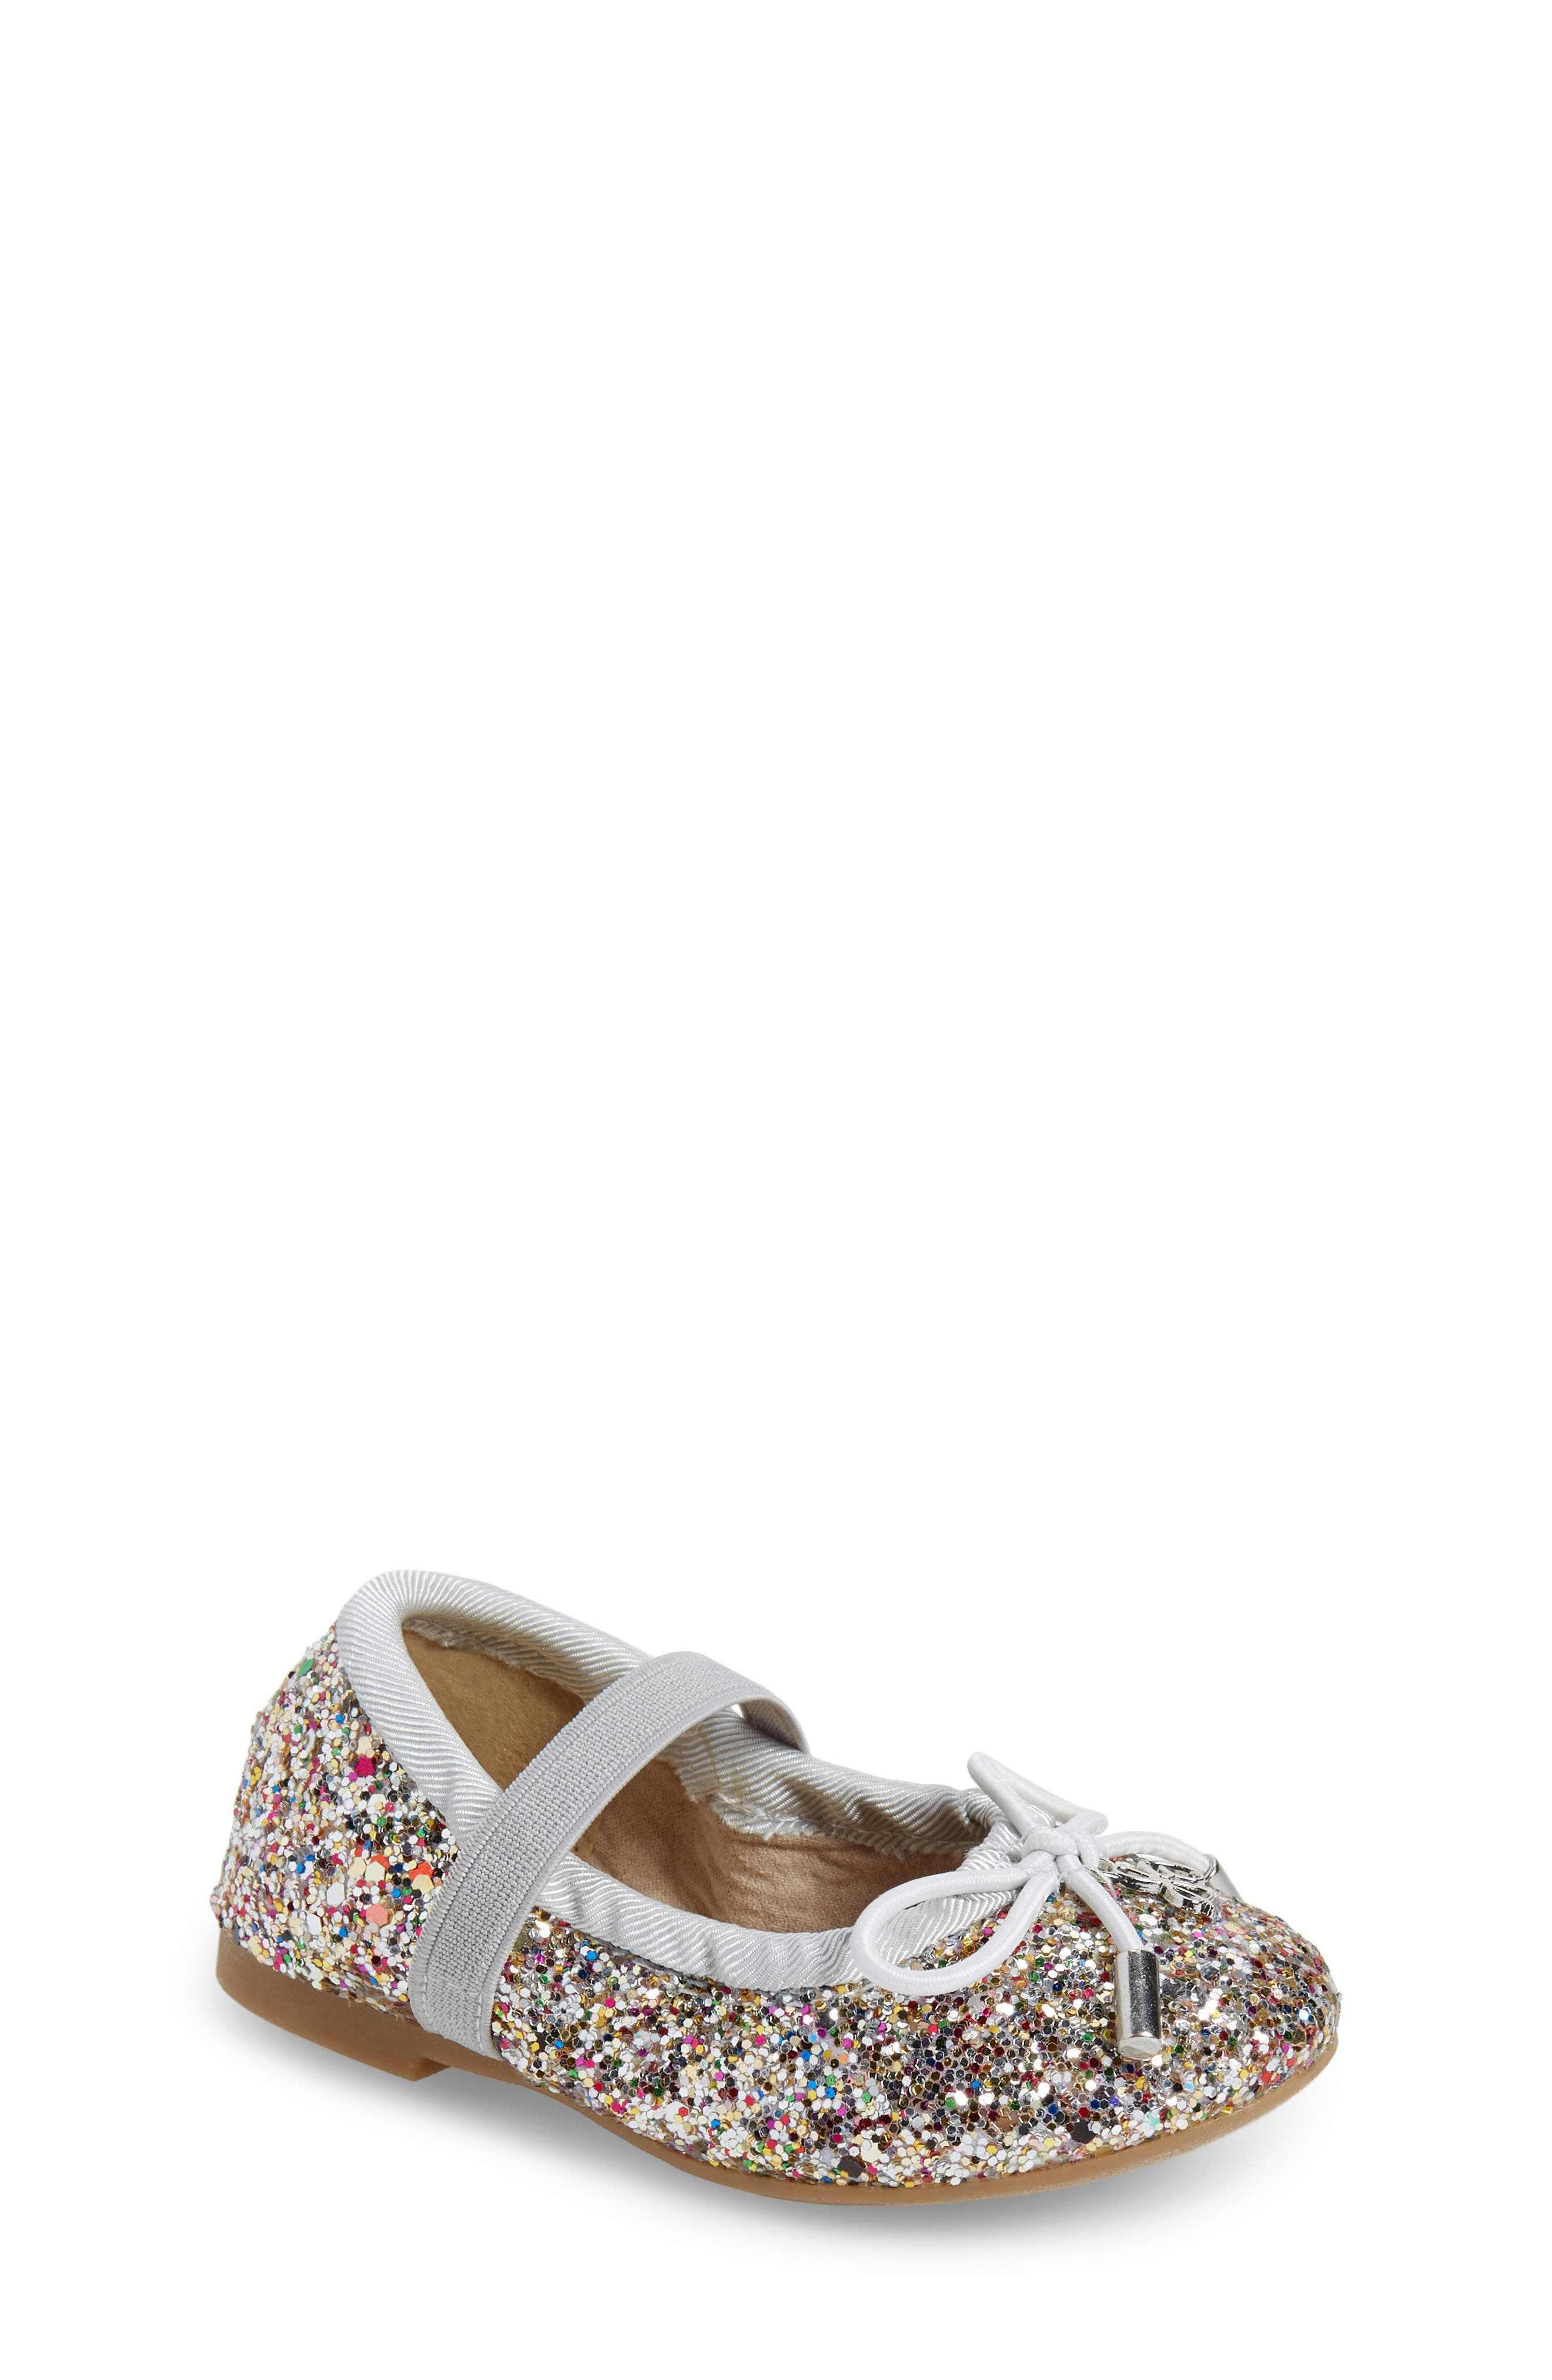 'Felicia' Mary Jane Ballet Flat,                             Main thumbnail 1, color,                             Silver Multi Glitter